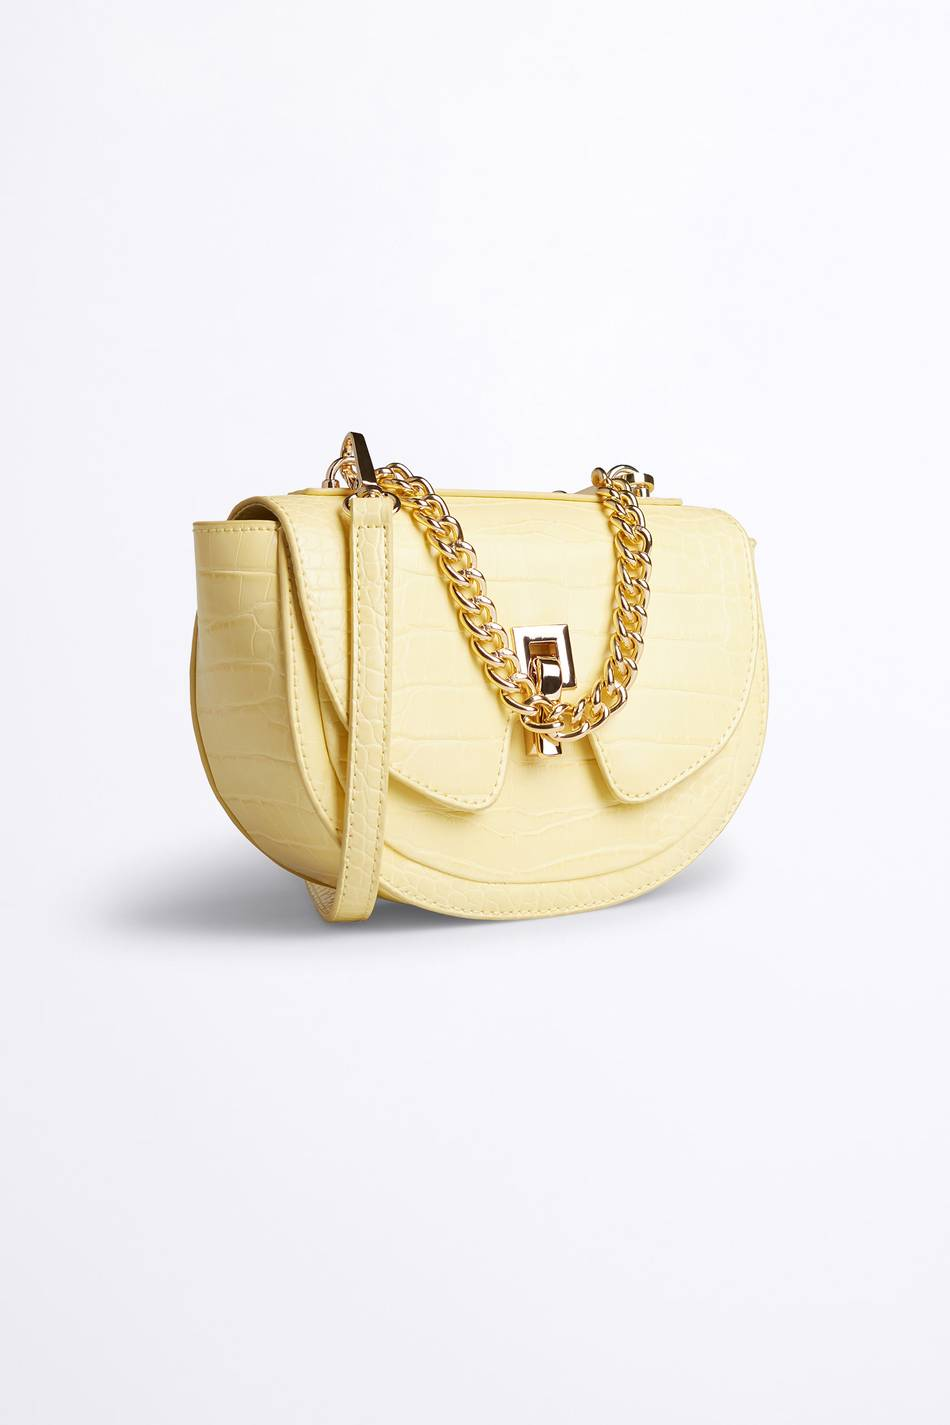 Gina Tricot Anabelle bag